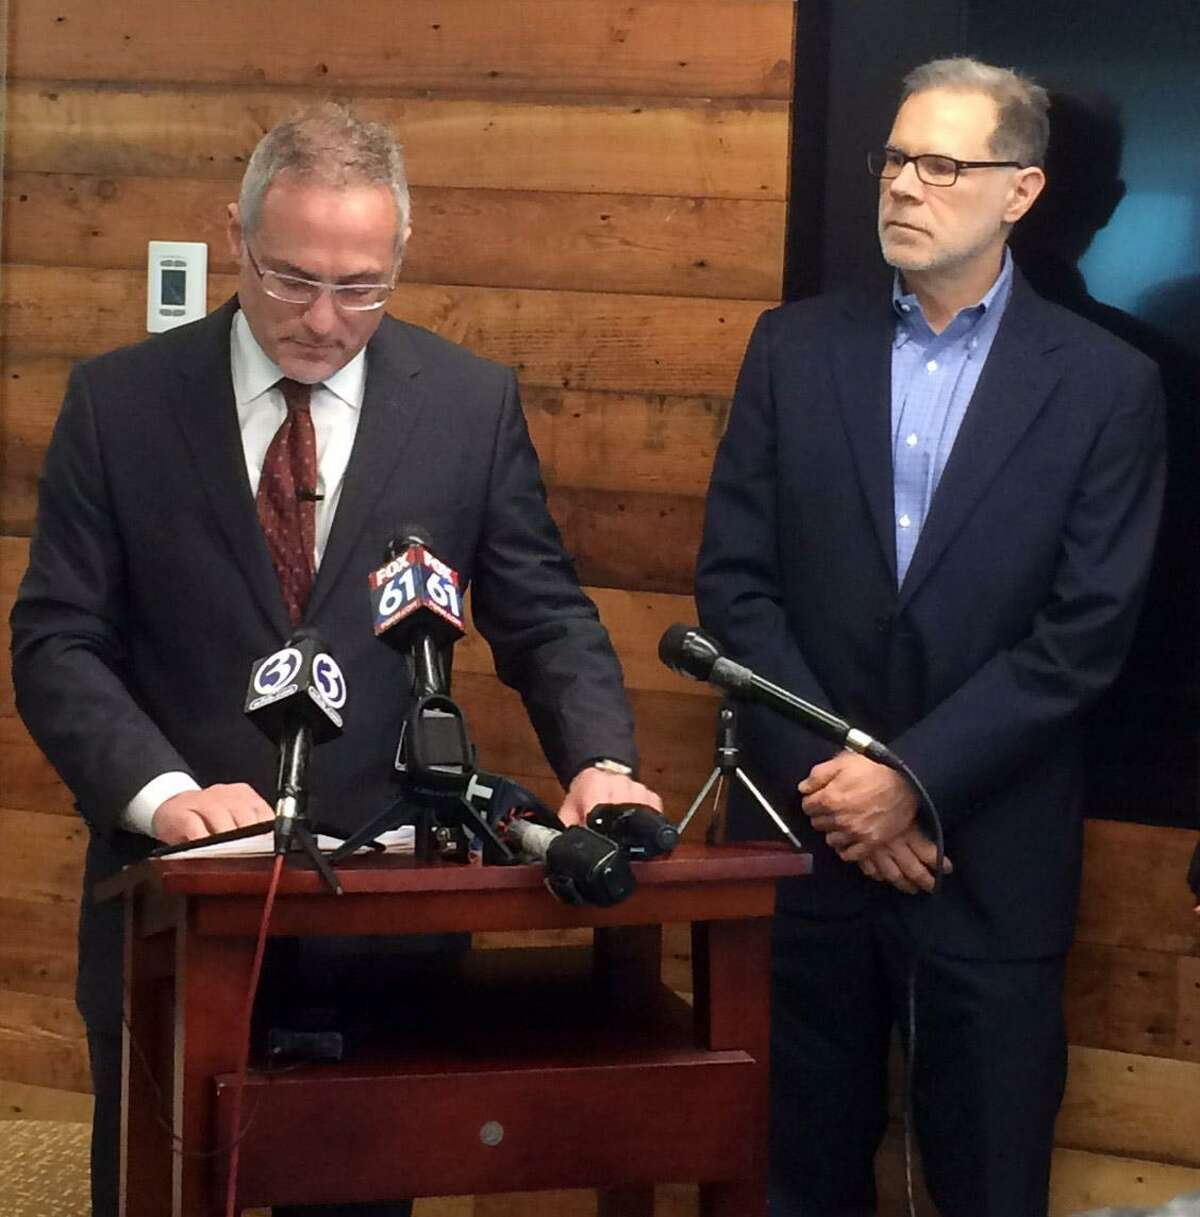 Attorney Antonio Ponvert III (left) and Albert Shehadi address the news media during a press conference in Bridgeport on Thursday, March 1, 2018, after filing federal and state lawsuits claiming abuse by employees of the state's psychiatric hospital. A Bridgeport judge has refused to dismiss the case against the state.